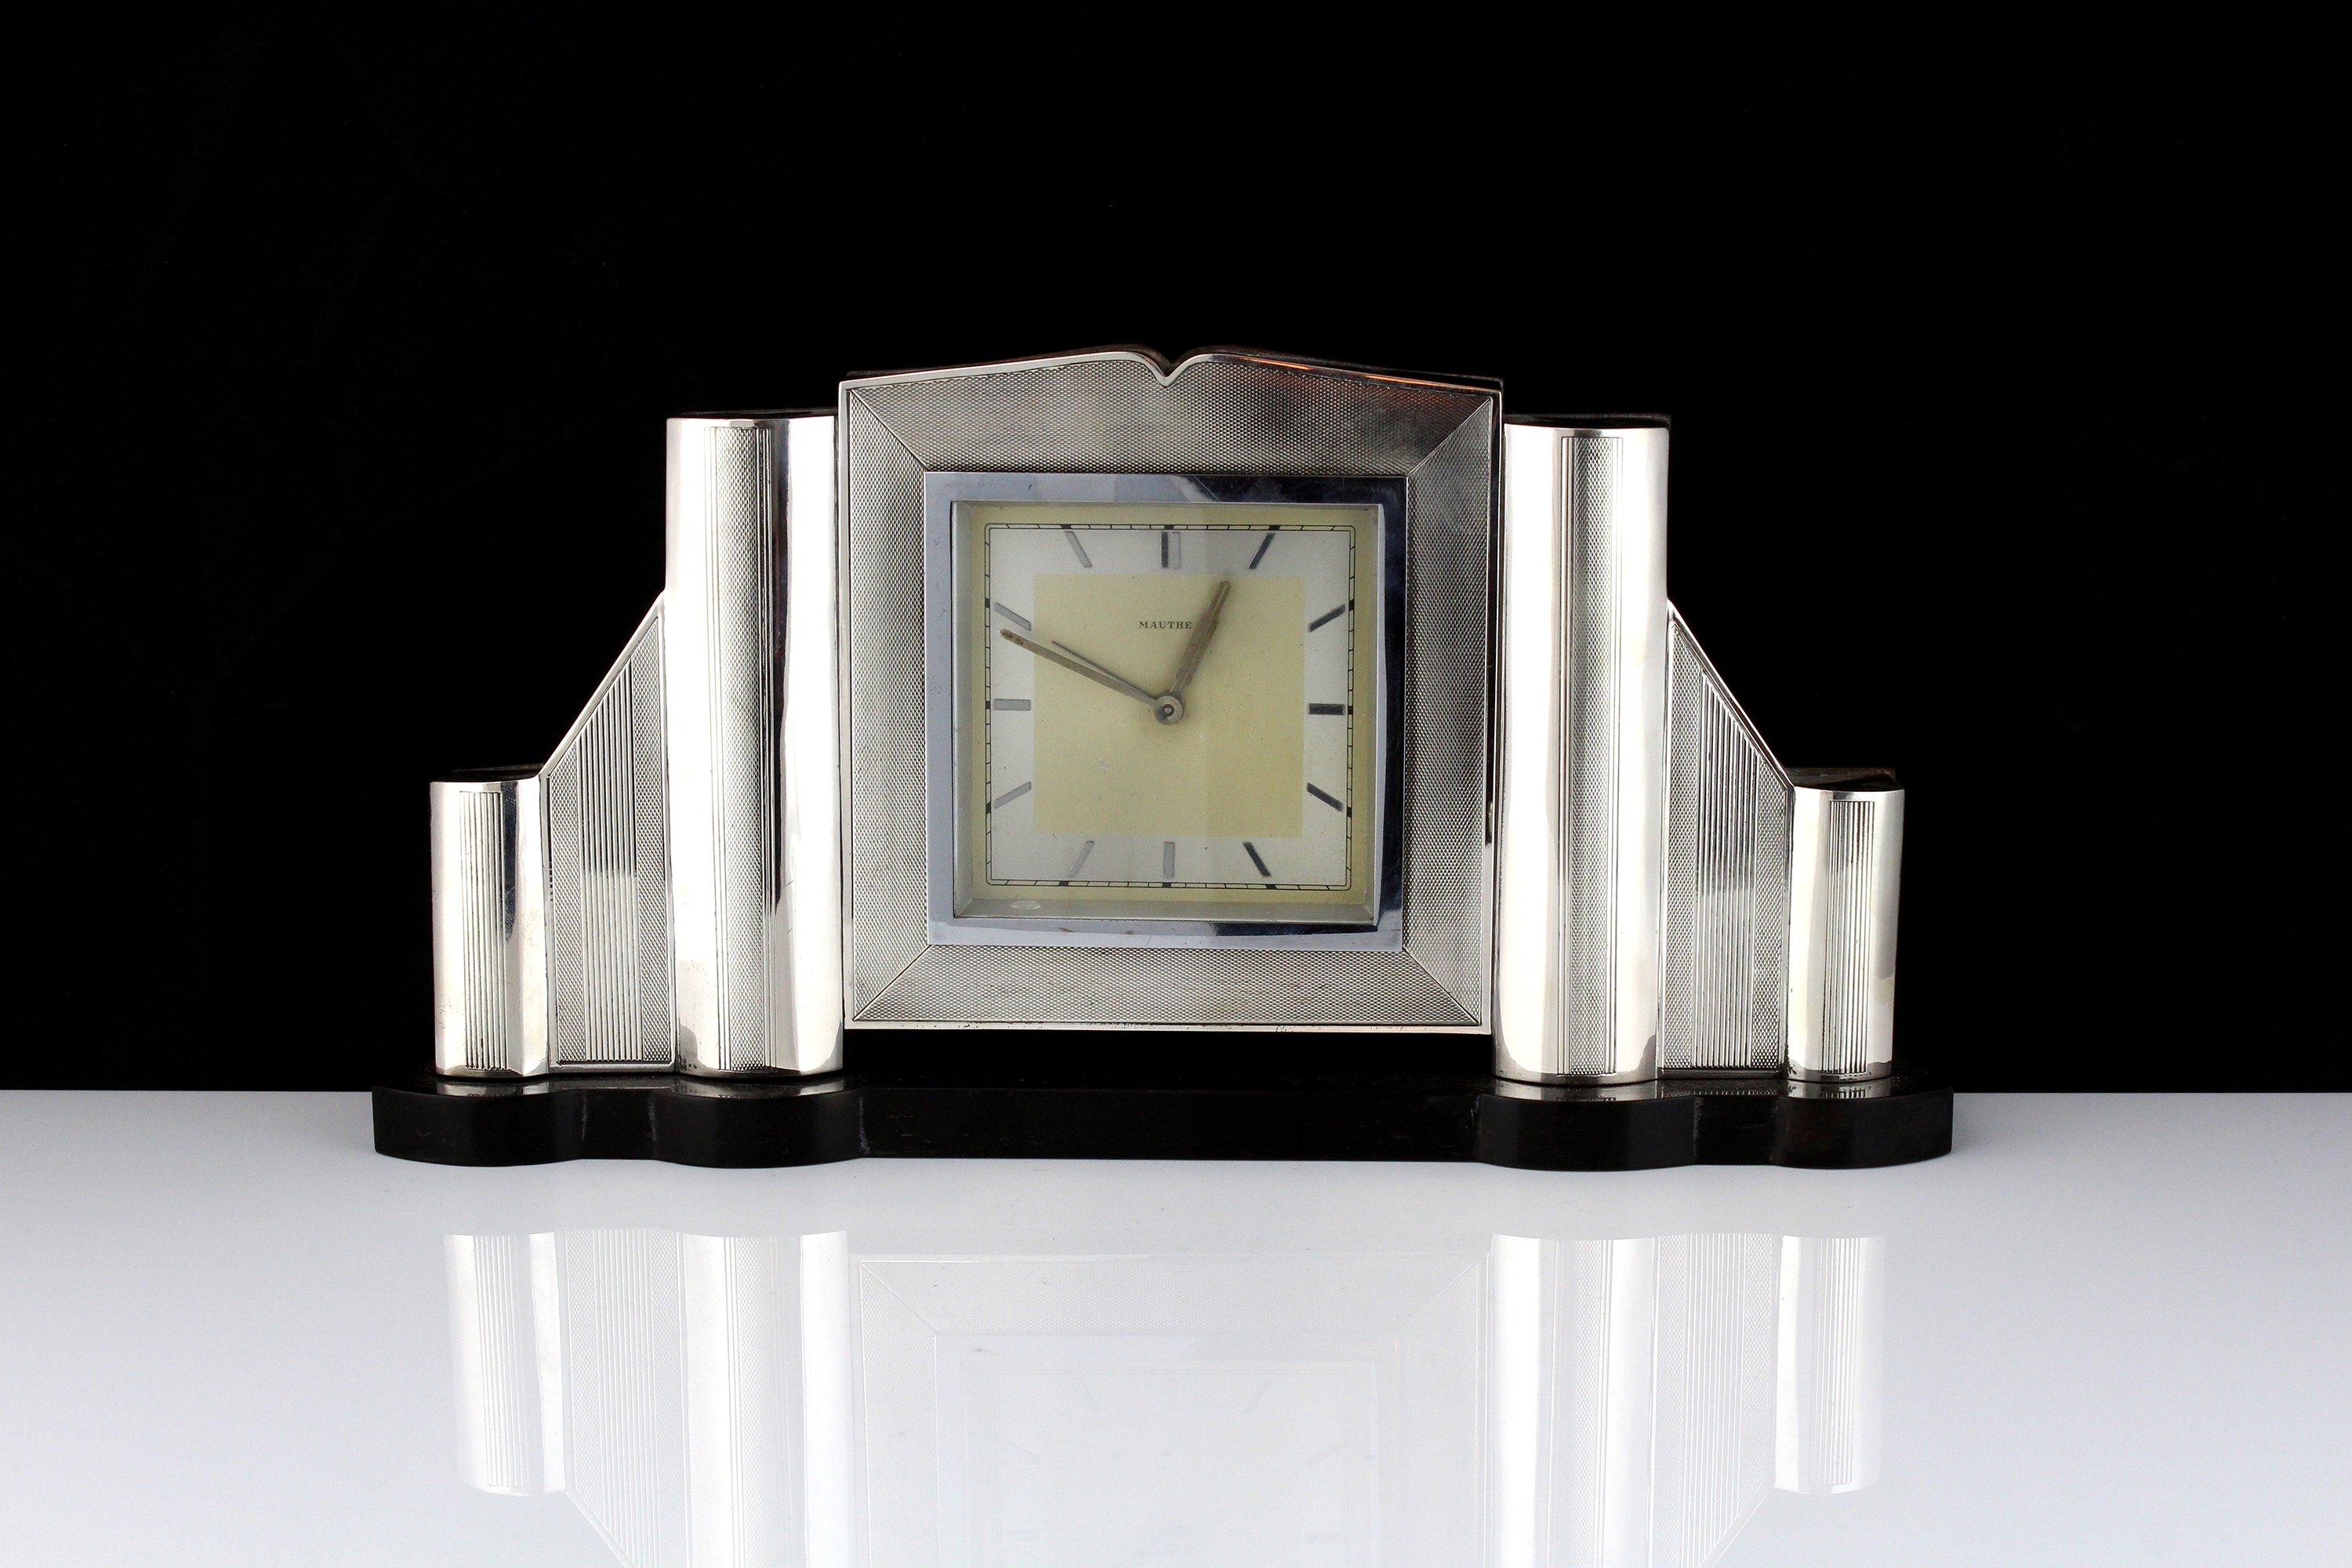 An Art Deco style German Silver mantel clock the geometric body with panels of engine turned